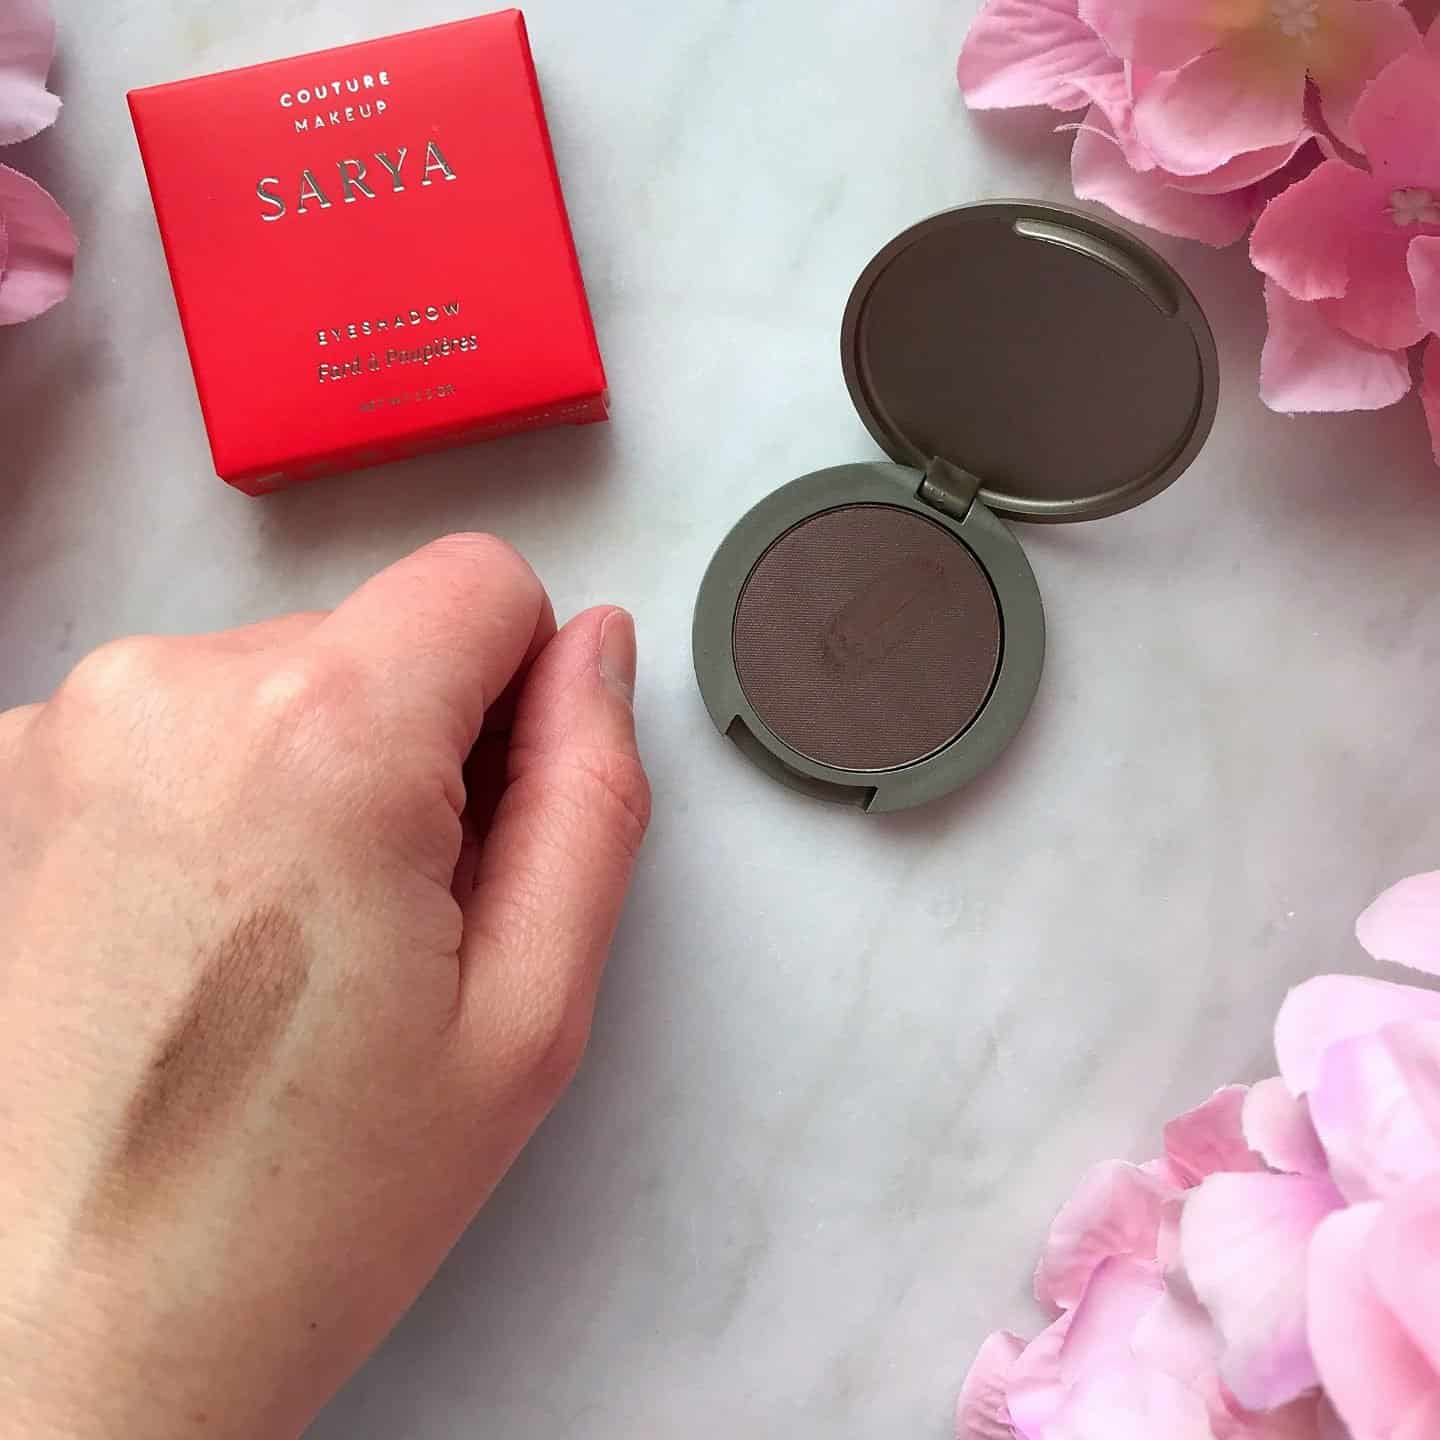 Sarya Couture Makeup Mocha Eyeshadow from the March Love Lula Beauty Box